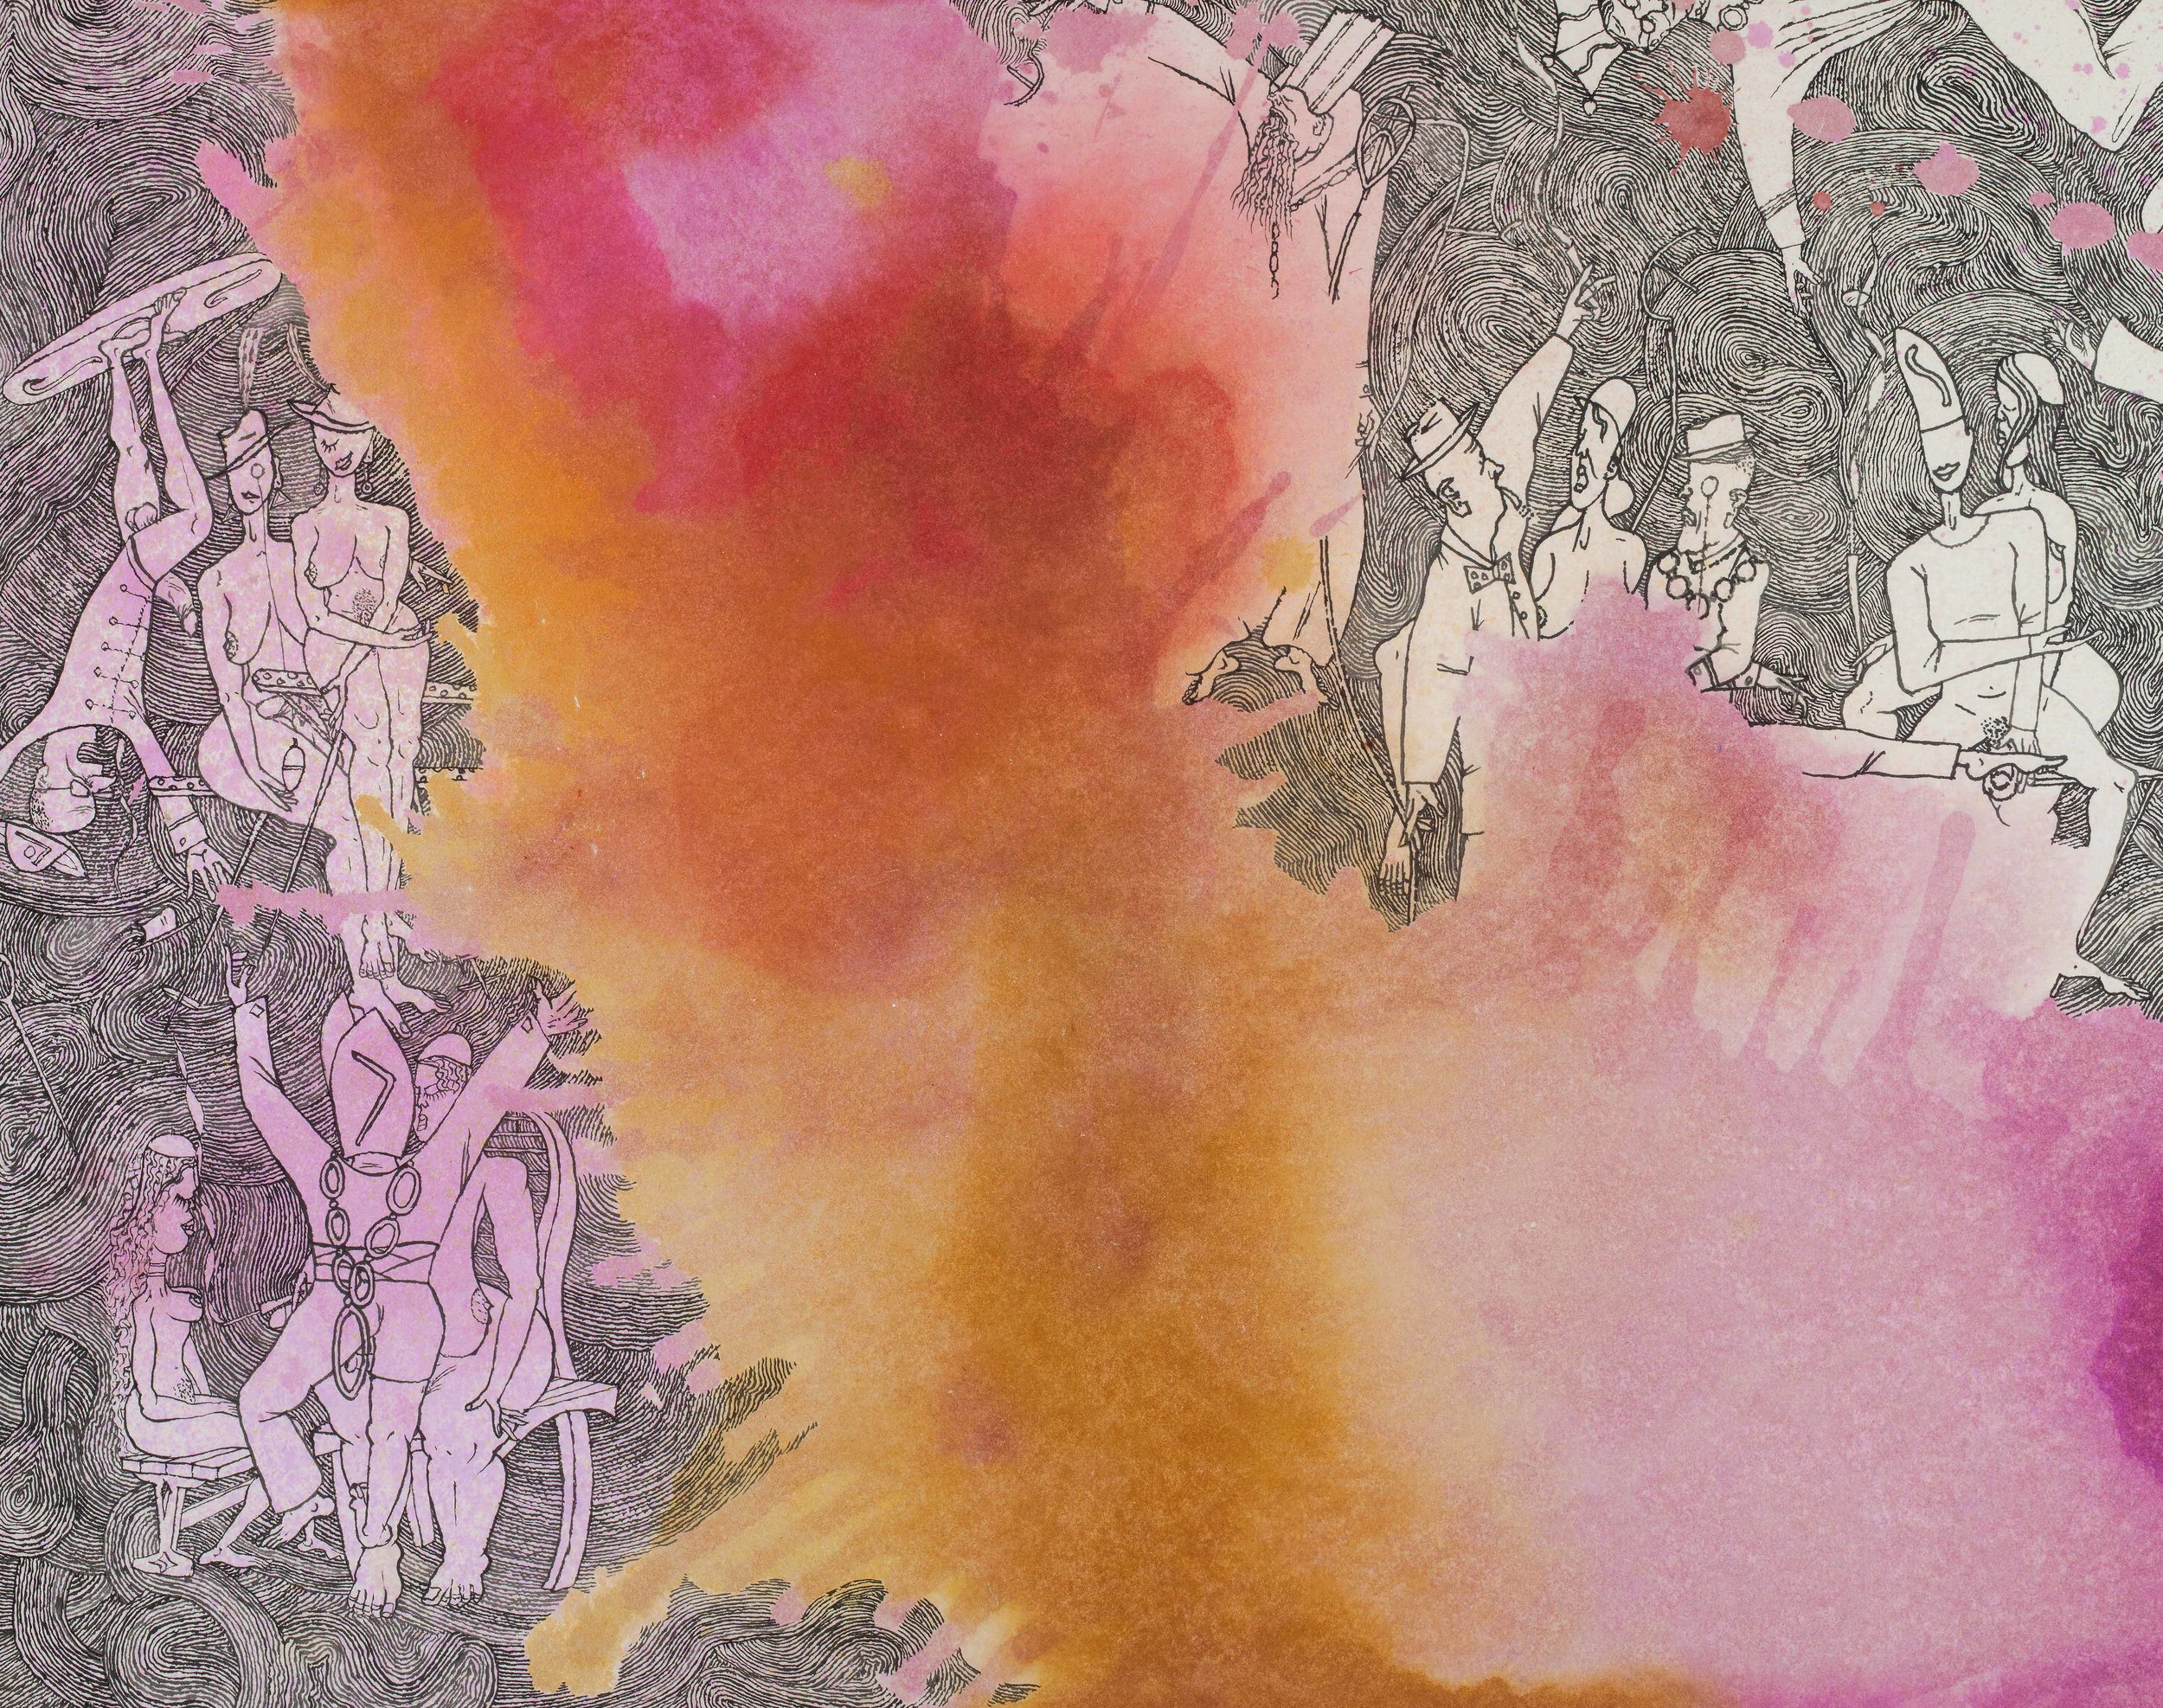 - Mystery of Entanglements II (detail)byEllen Johansen & M G Walker(Acrylic, brush & ink on Hahnemuhle paper)TIVOLI'swinter - spring ENCOUNTER GROUPEXHIBITION Works in stock and by Waiheke artistsopens Sat July 15, 5pmall welcomeChristina Conrad     James Ross     Enid Marx     Ellen Johansen & MG Walker     Sarah McKenney     Sue McKenzie     Oliver Stretton-Pow Juliet Peters     Paula Rego     Kiki Smith     Francis Upritchard    Rune van der Voo      et al